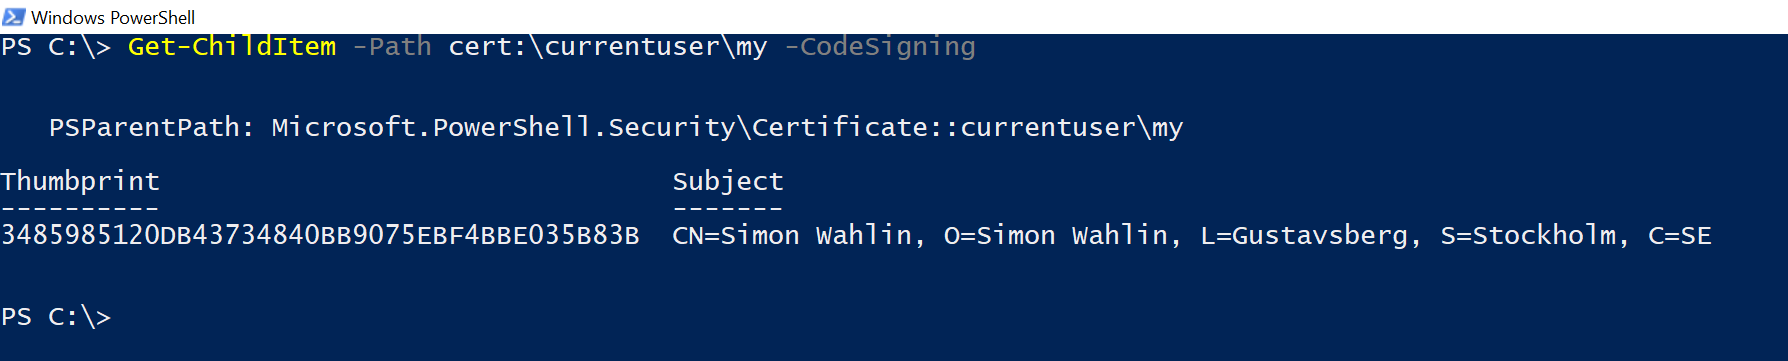 Using a Yubikey for PowerShell CodeSigning